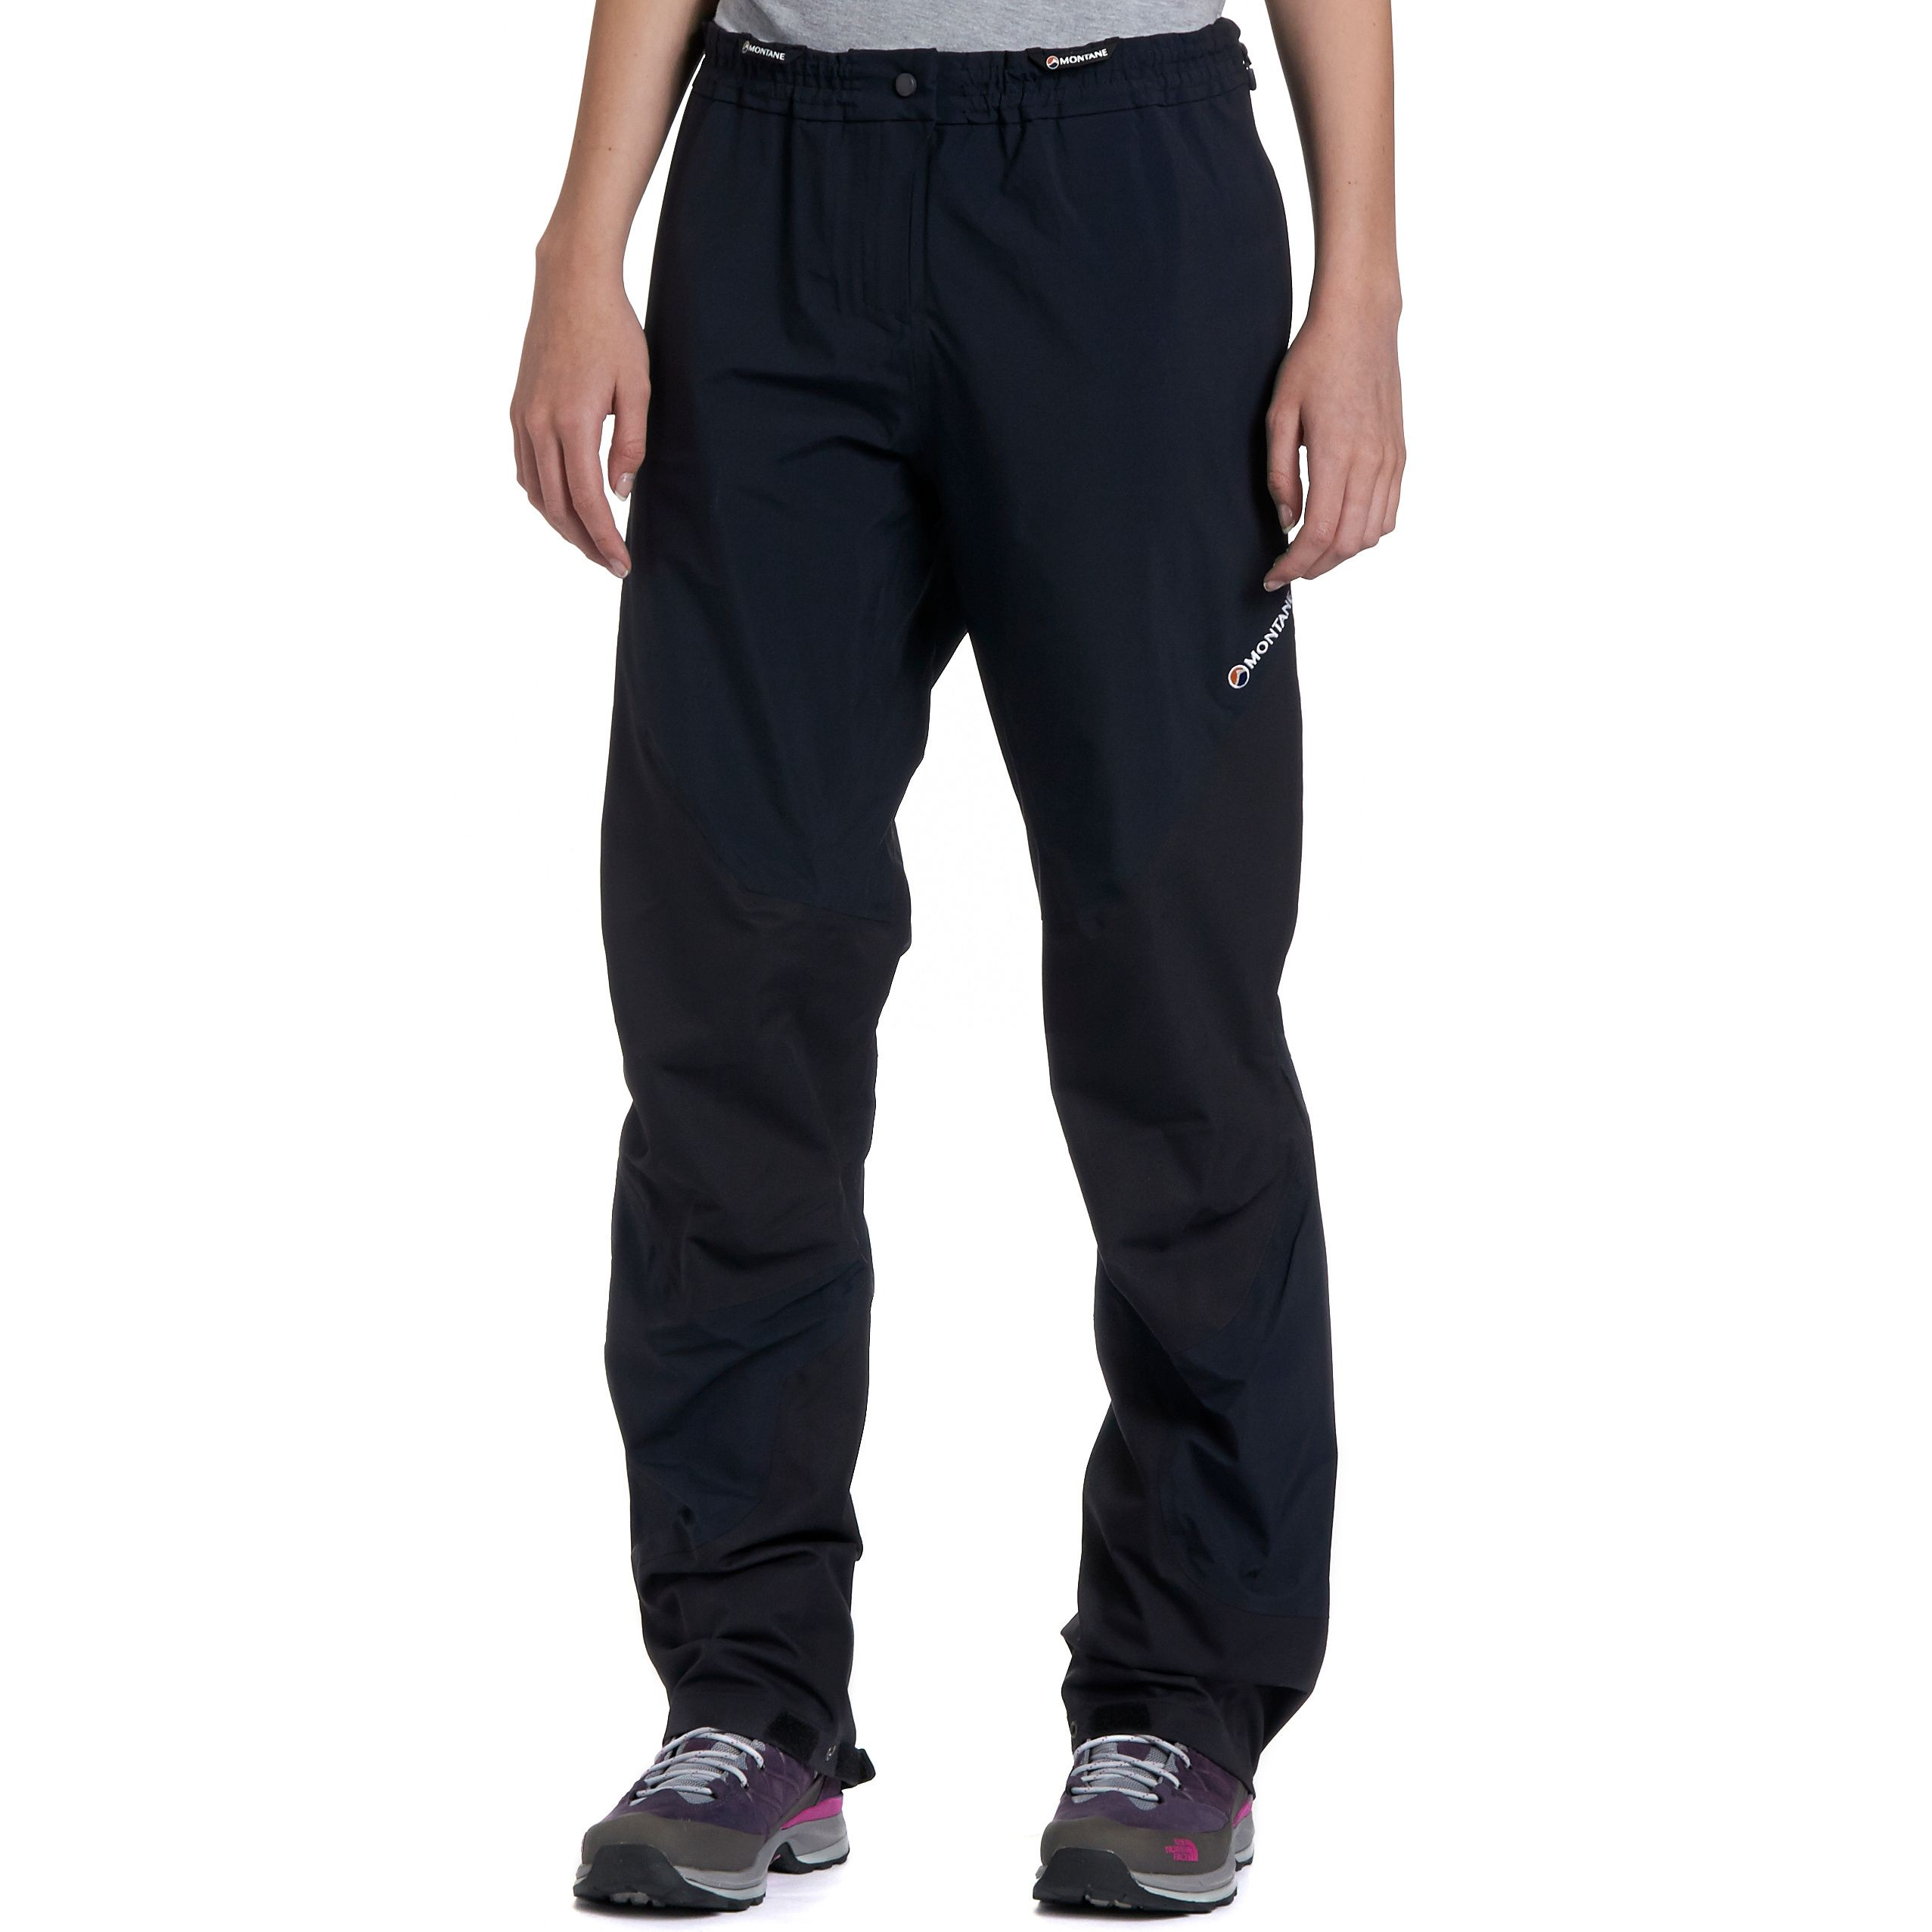 MONTANE Women's Astro Ascent eVent® Trousers